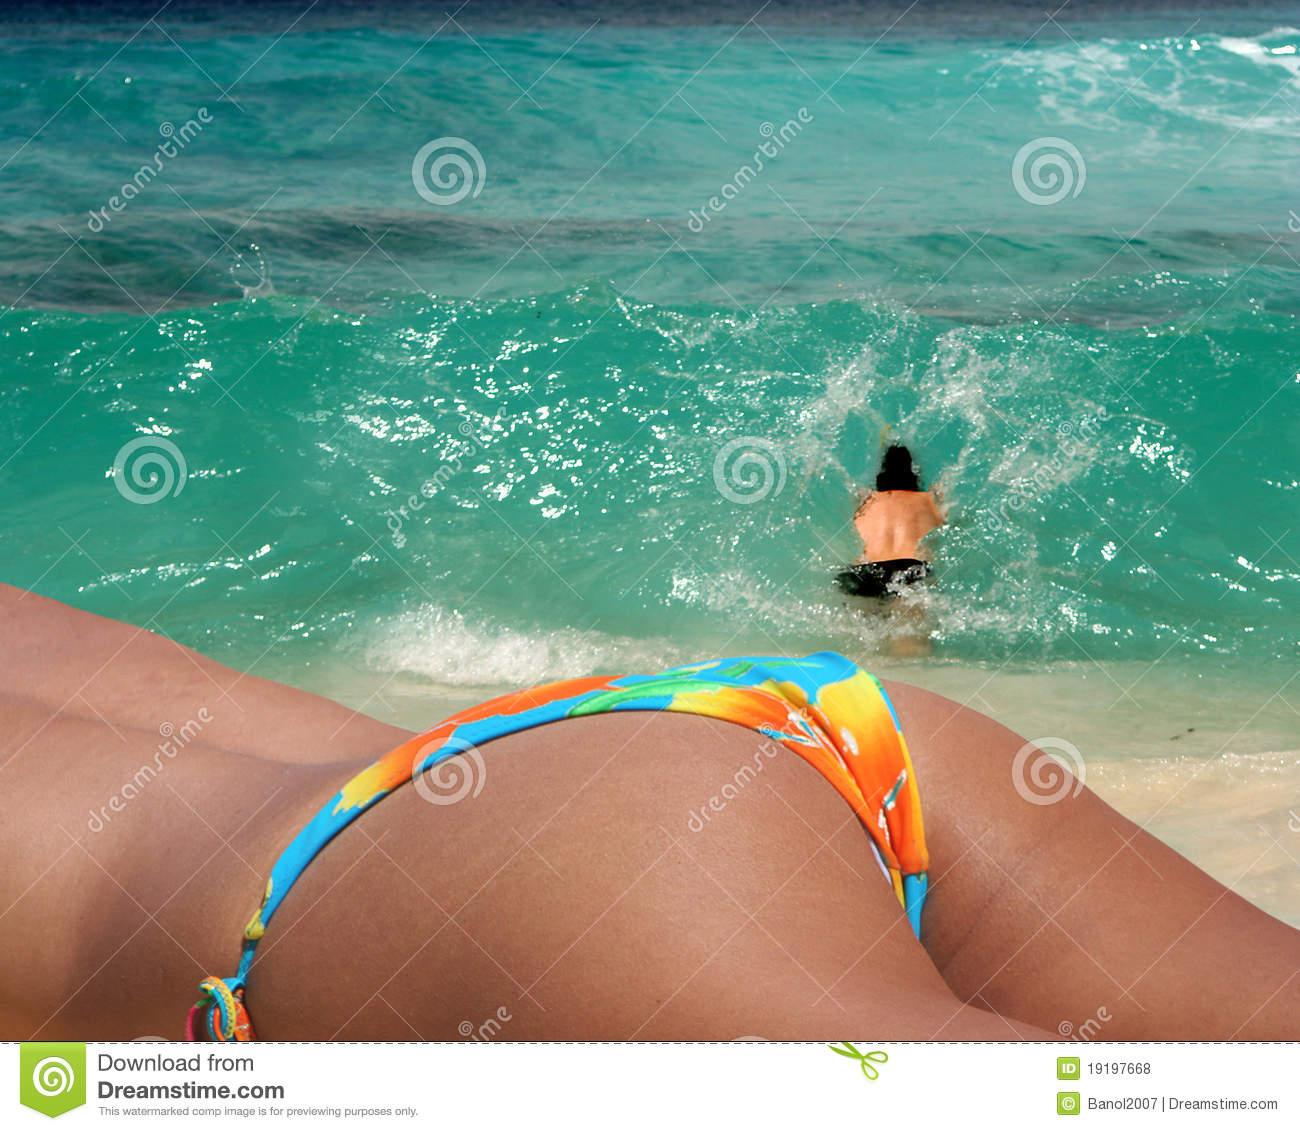 Couple At The Beach Stock Image Image Of Caucasian: Couple Enjoying Paradice Beach Stock Photo